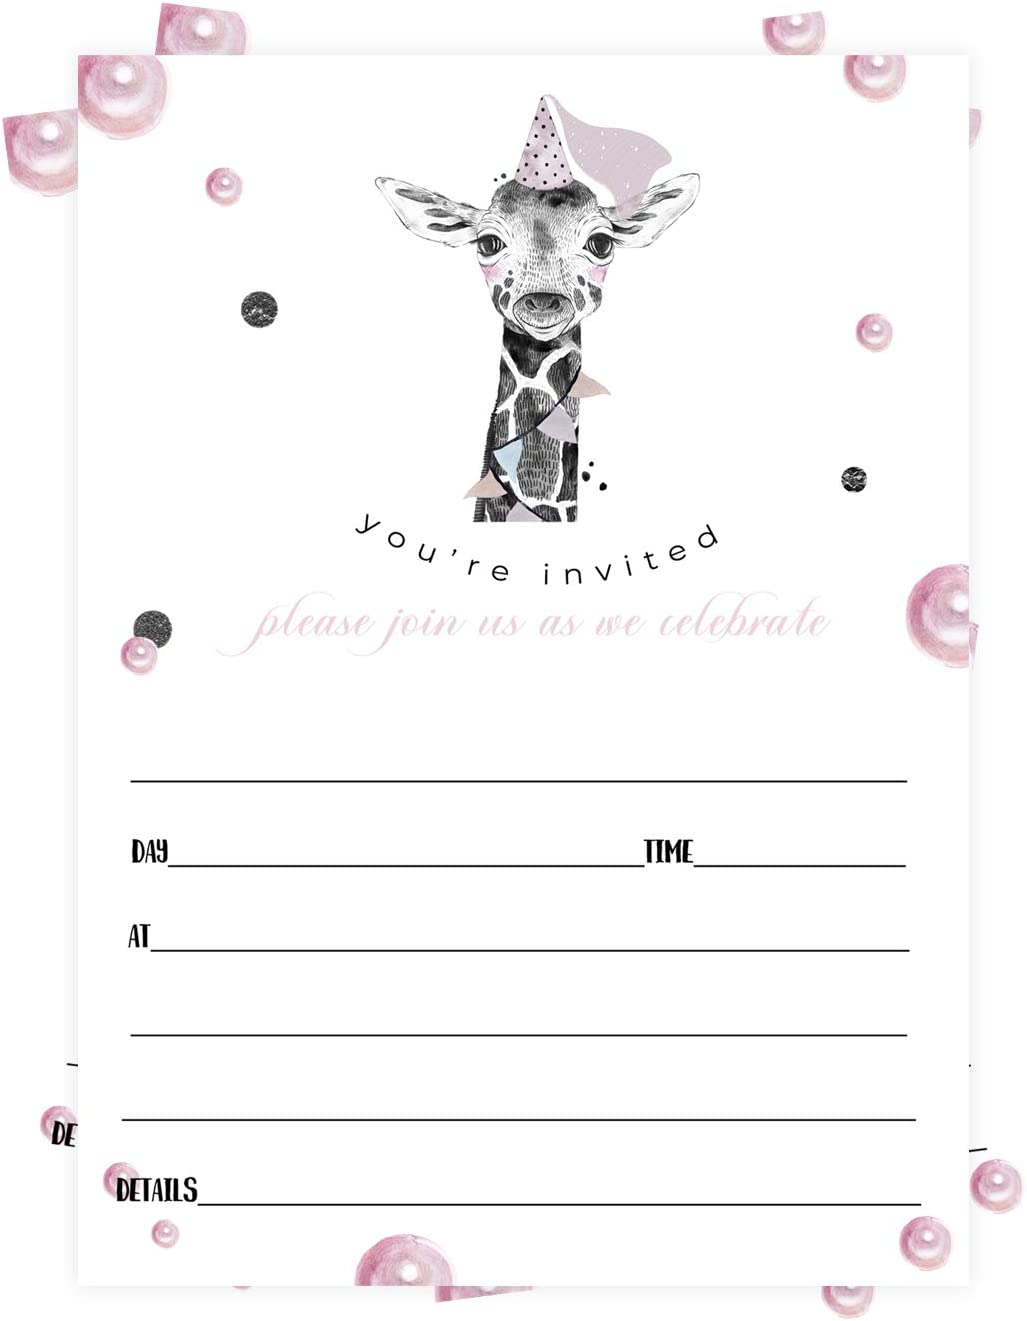 Pink Giraffe Party Invitations (25 Cards) Girls Birthday – Cute Little Safari Animal Ideas – Children, Toddlers, Teen - Fill-In Blank Style Invites and Envelope Pack